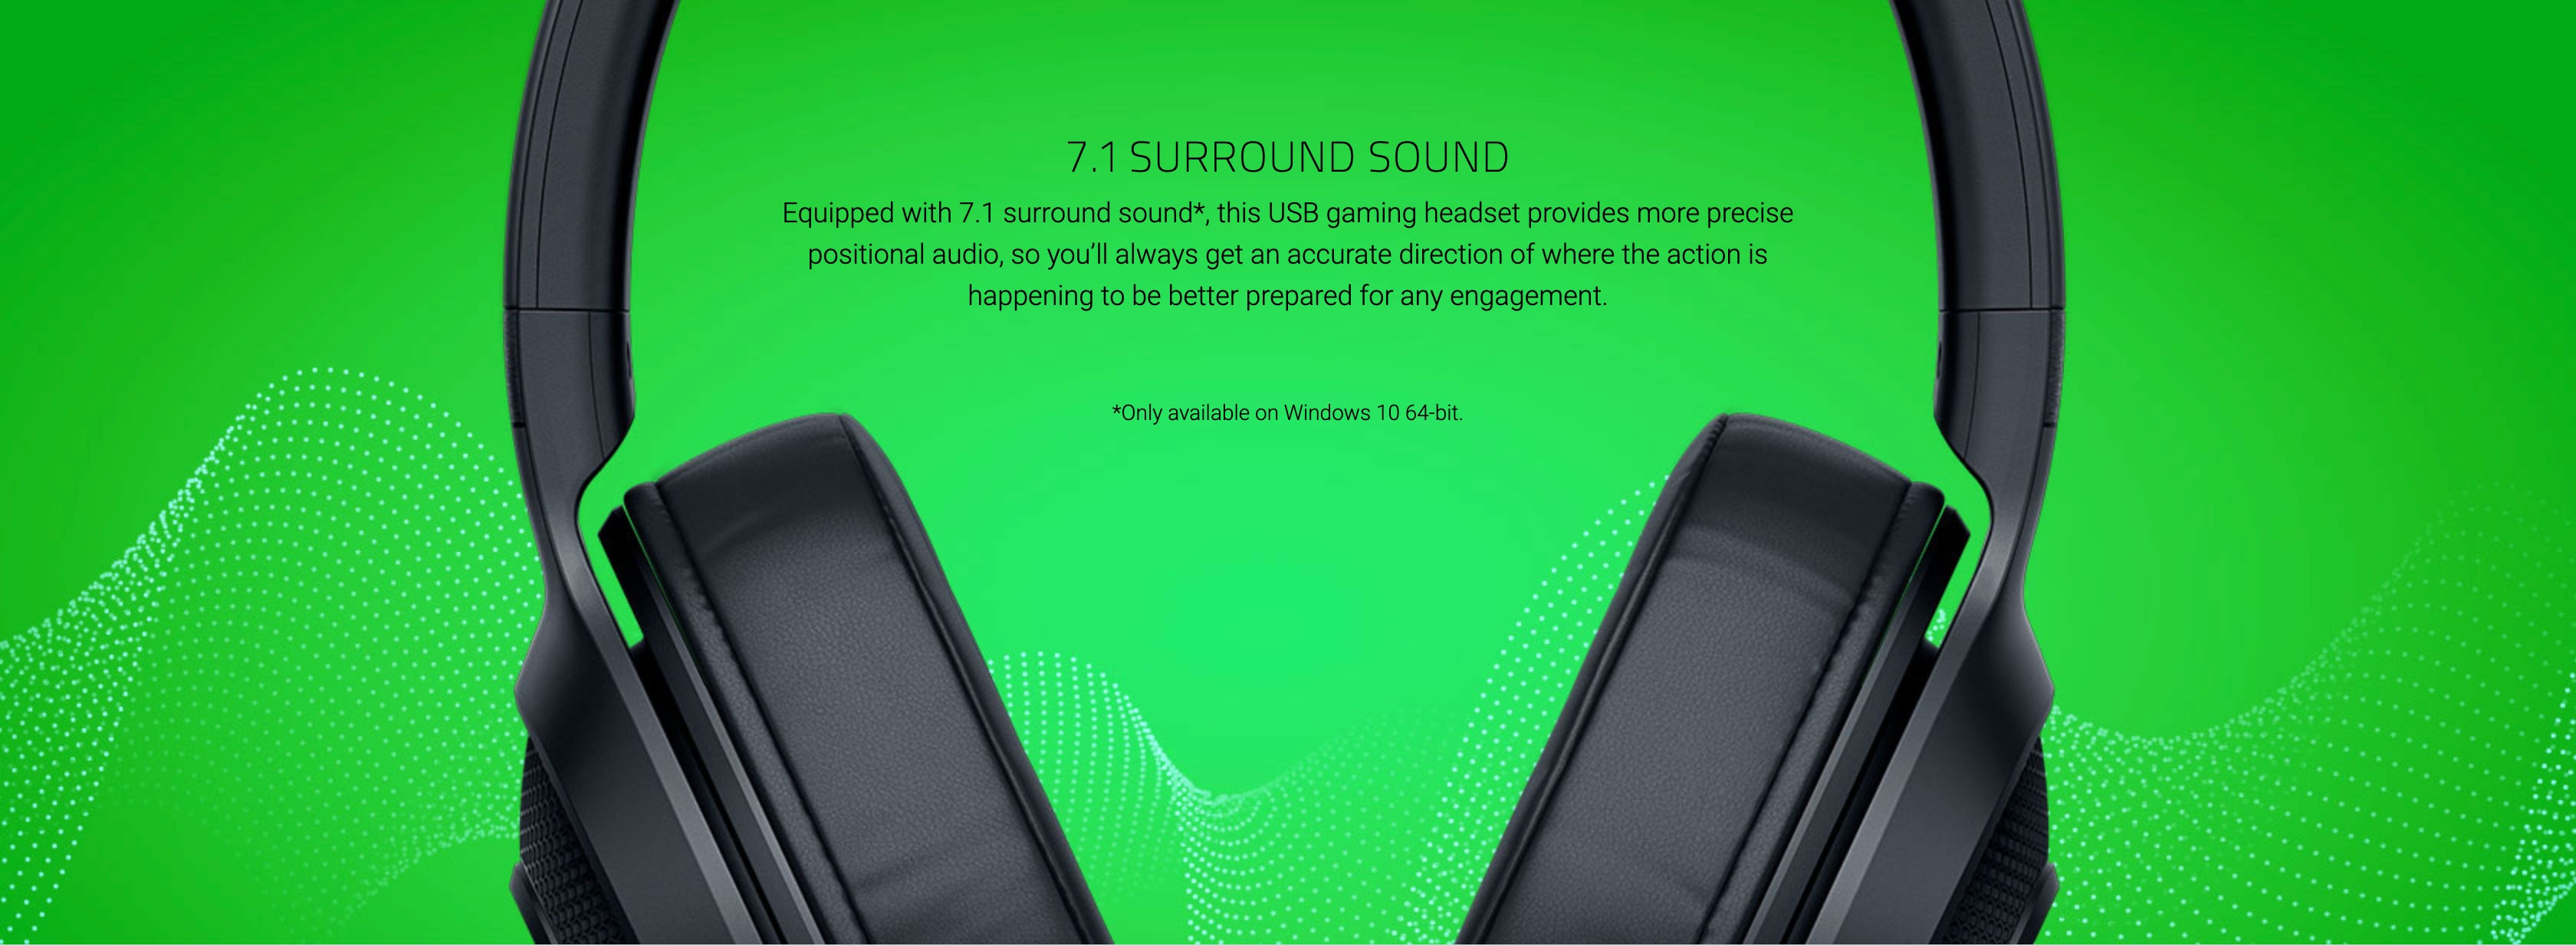 7.1 SURROUND SOUND